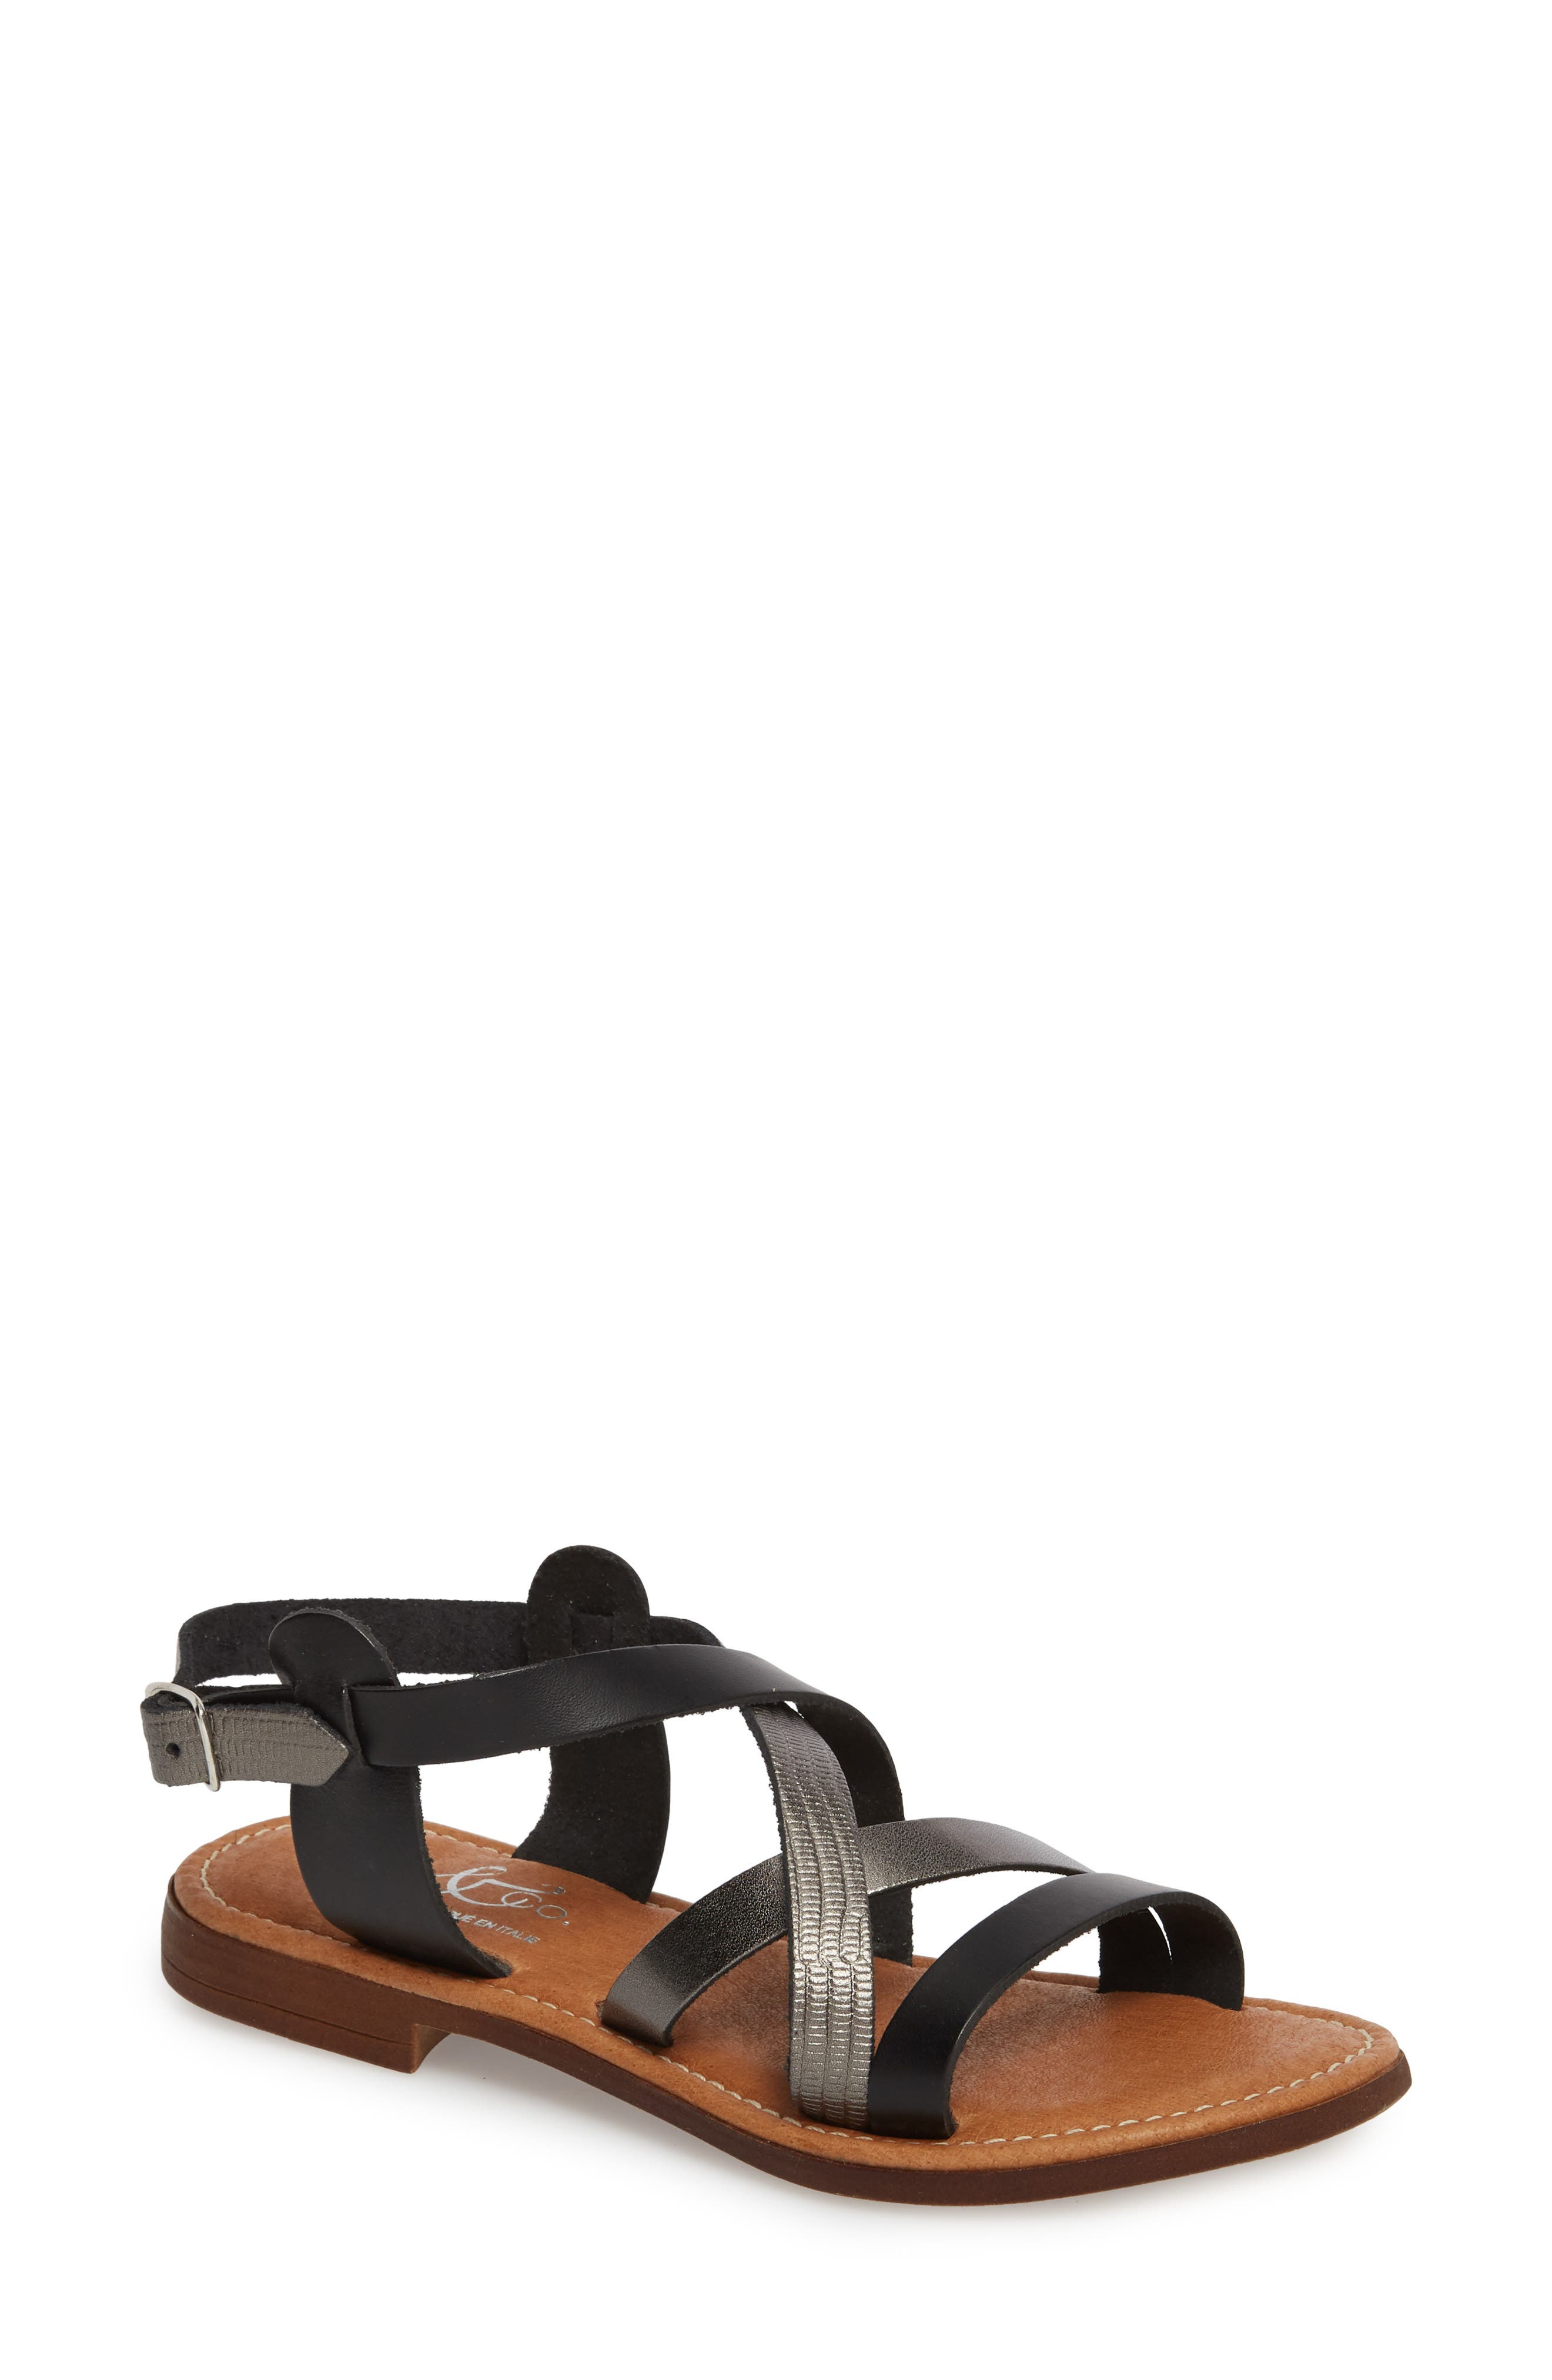 BOS. & CO. Ionna Sandal, Main, color, BLACK/ PEWTER SNAKE LEATHER